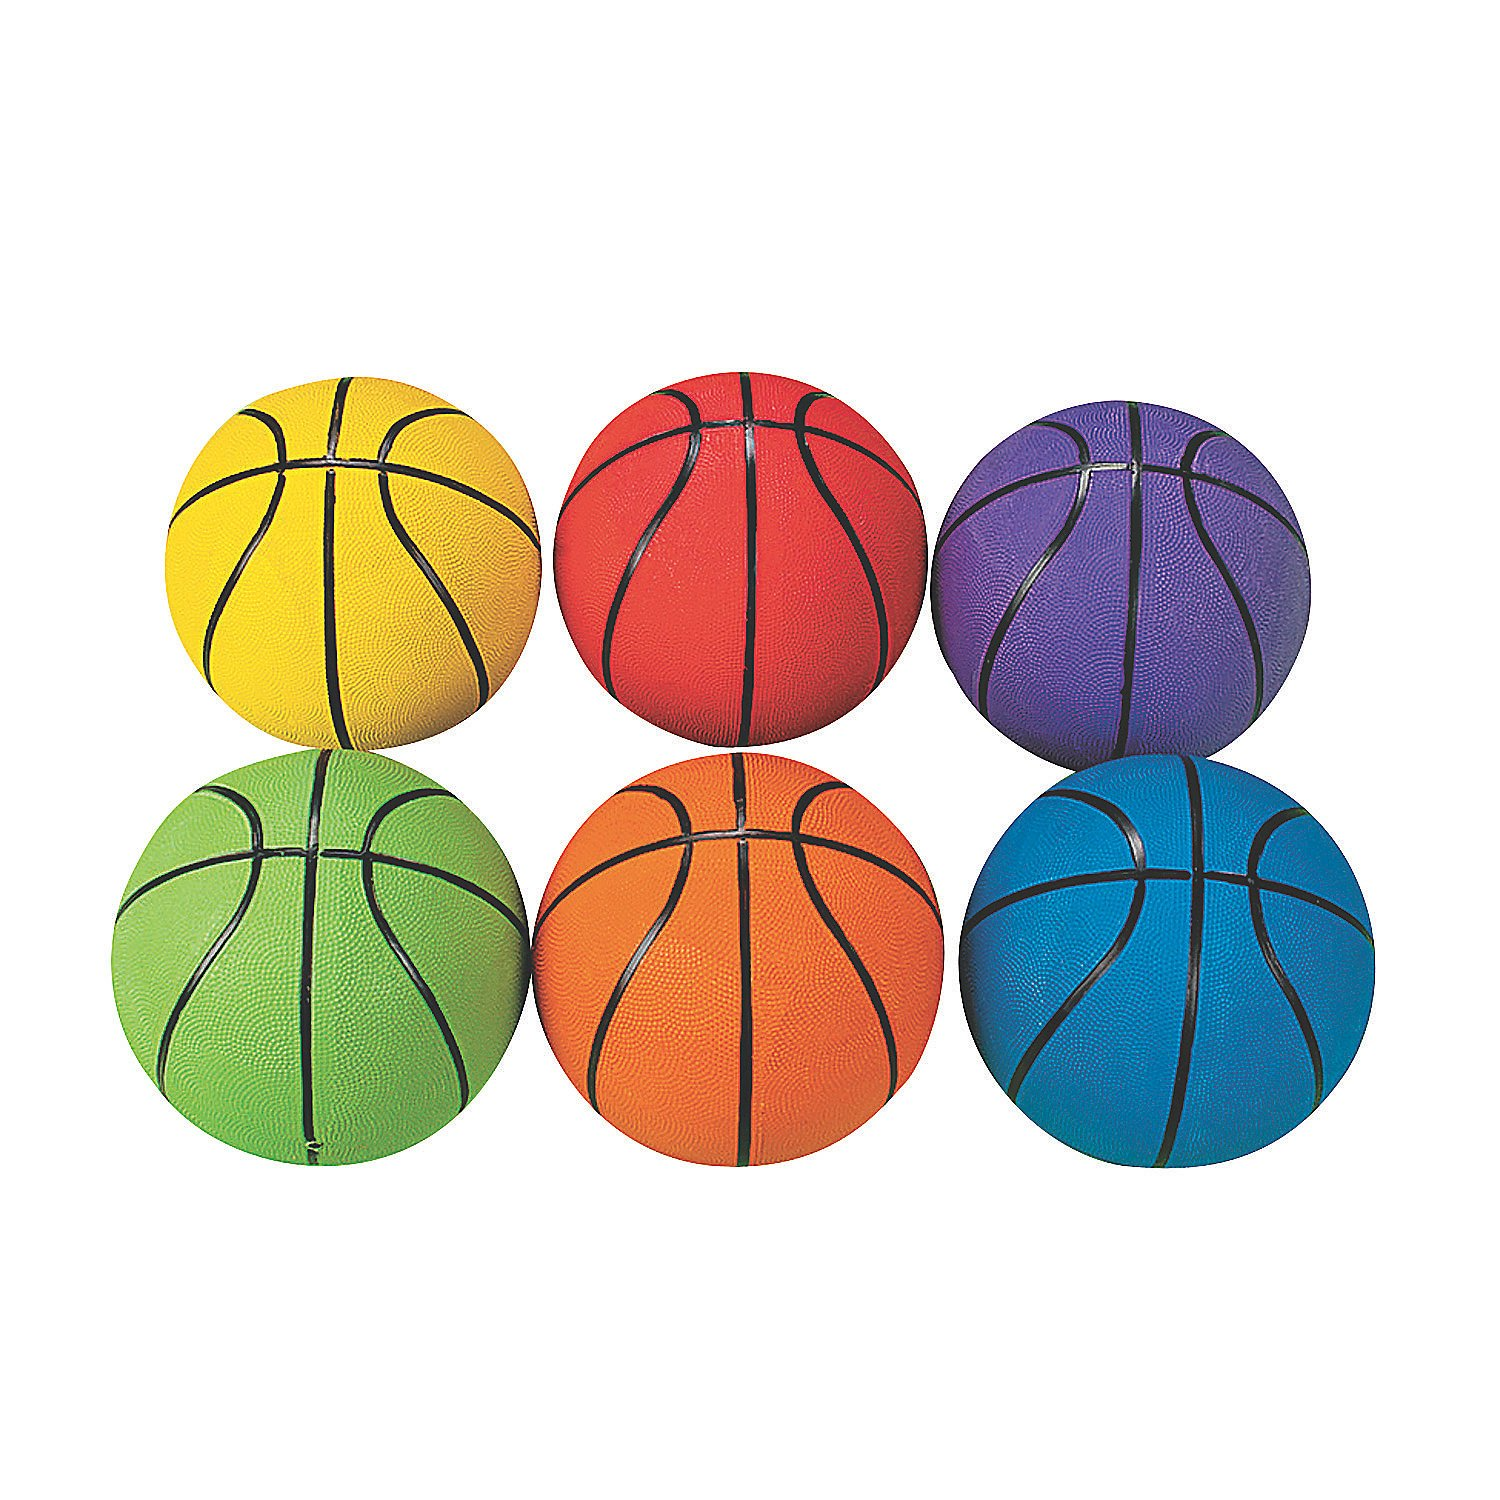 Fun Express - Rainbow Basketballs 6pcs - Toys - Balls - Playground Balls - 6 Pieces by Fun Express